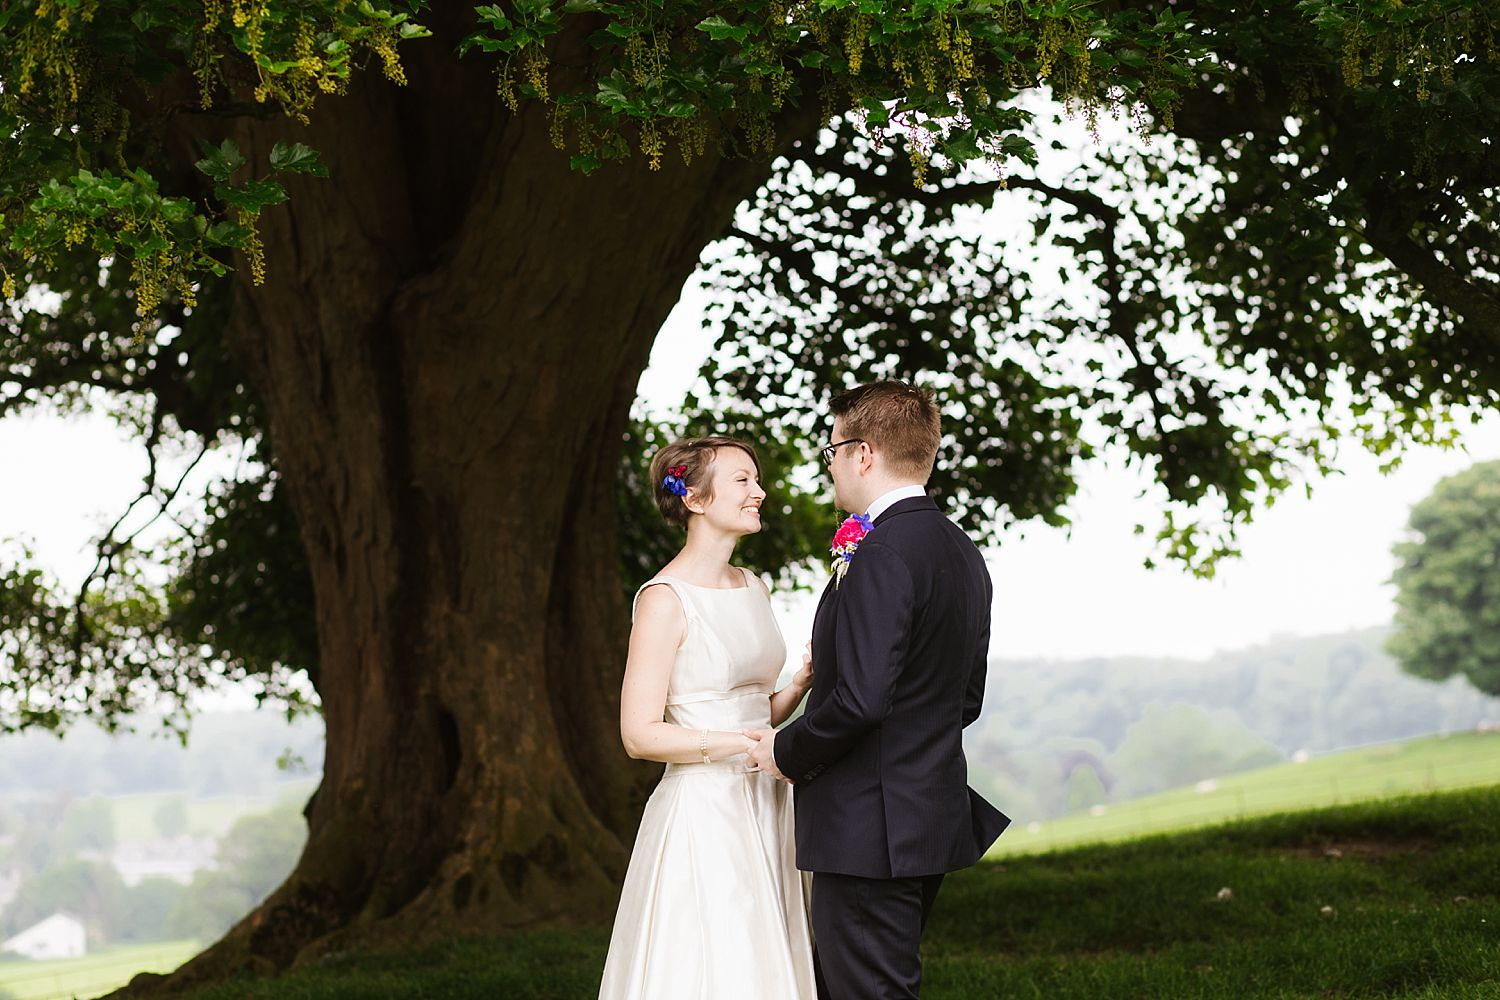 Bride and groom portrait under tree at country wedding venue, Park House Barn